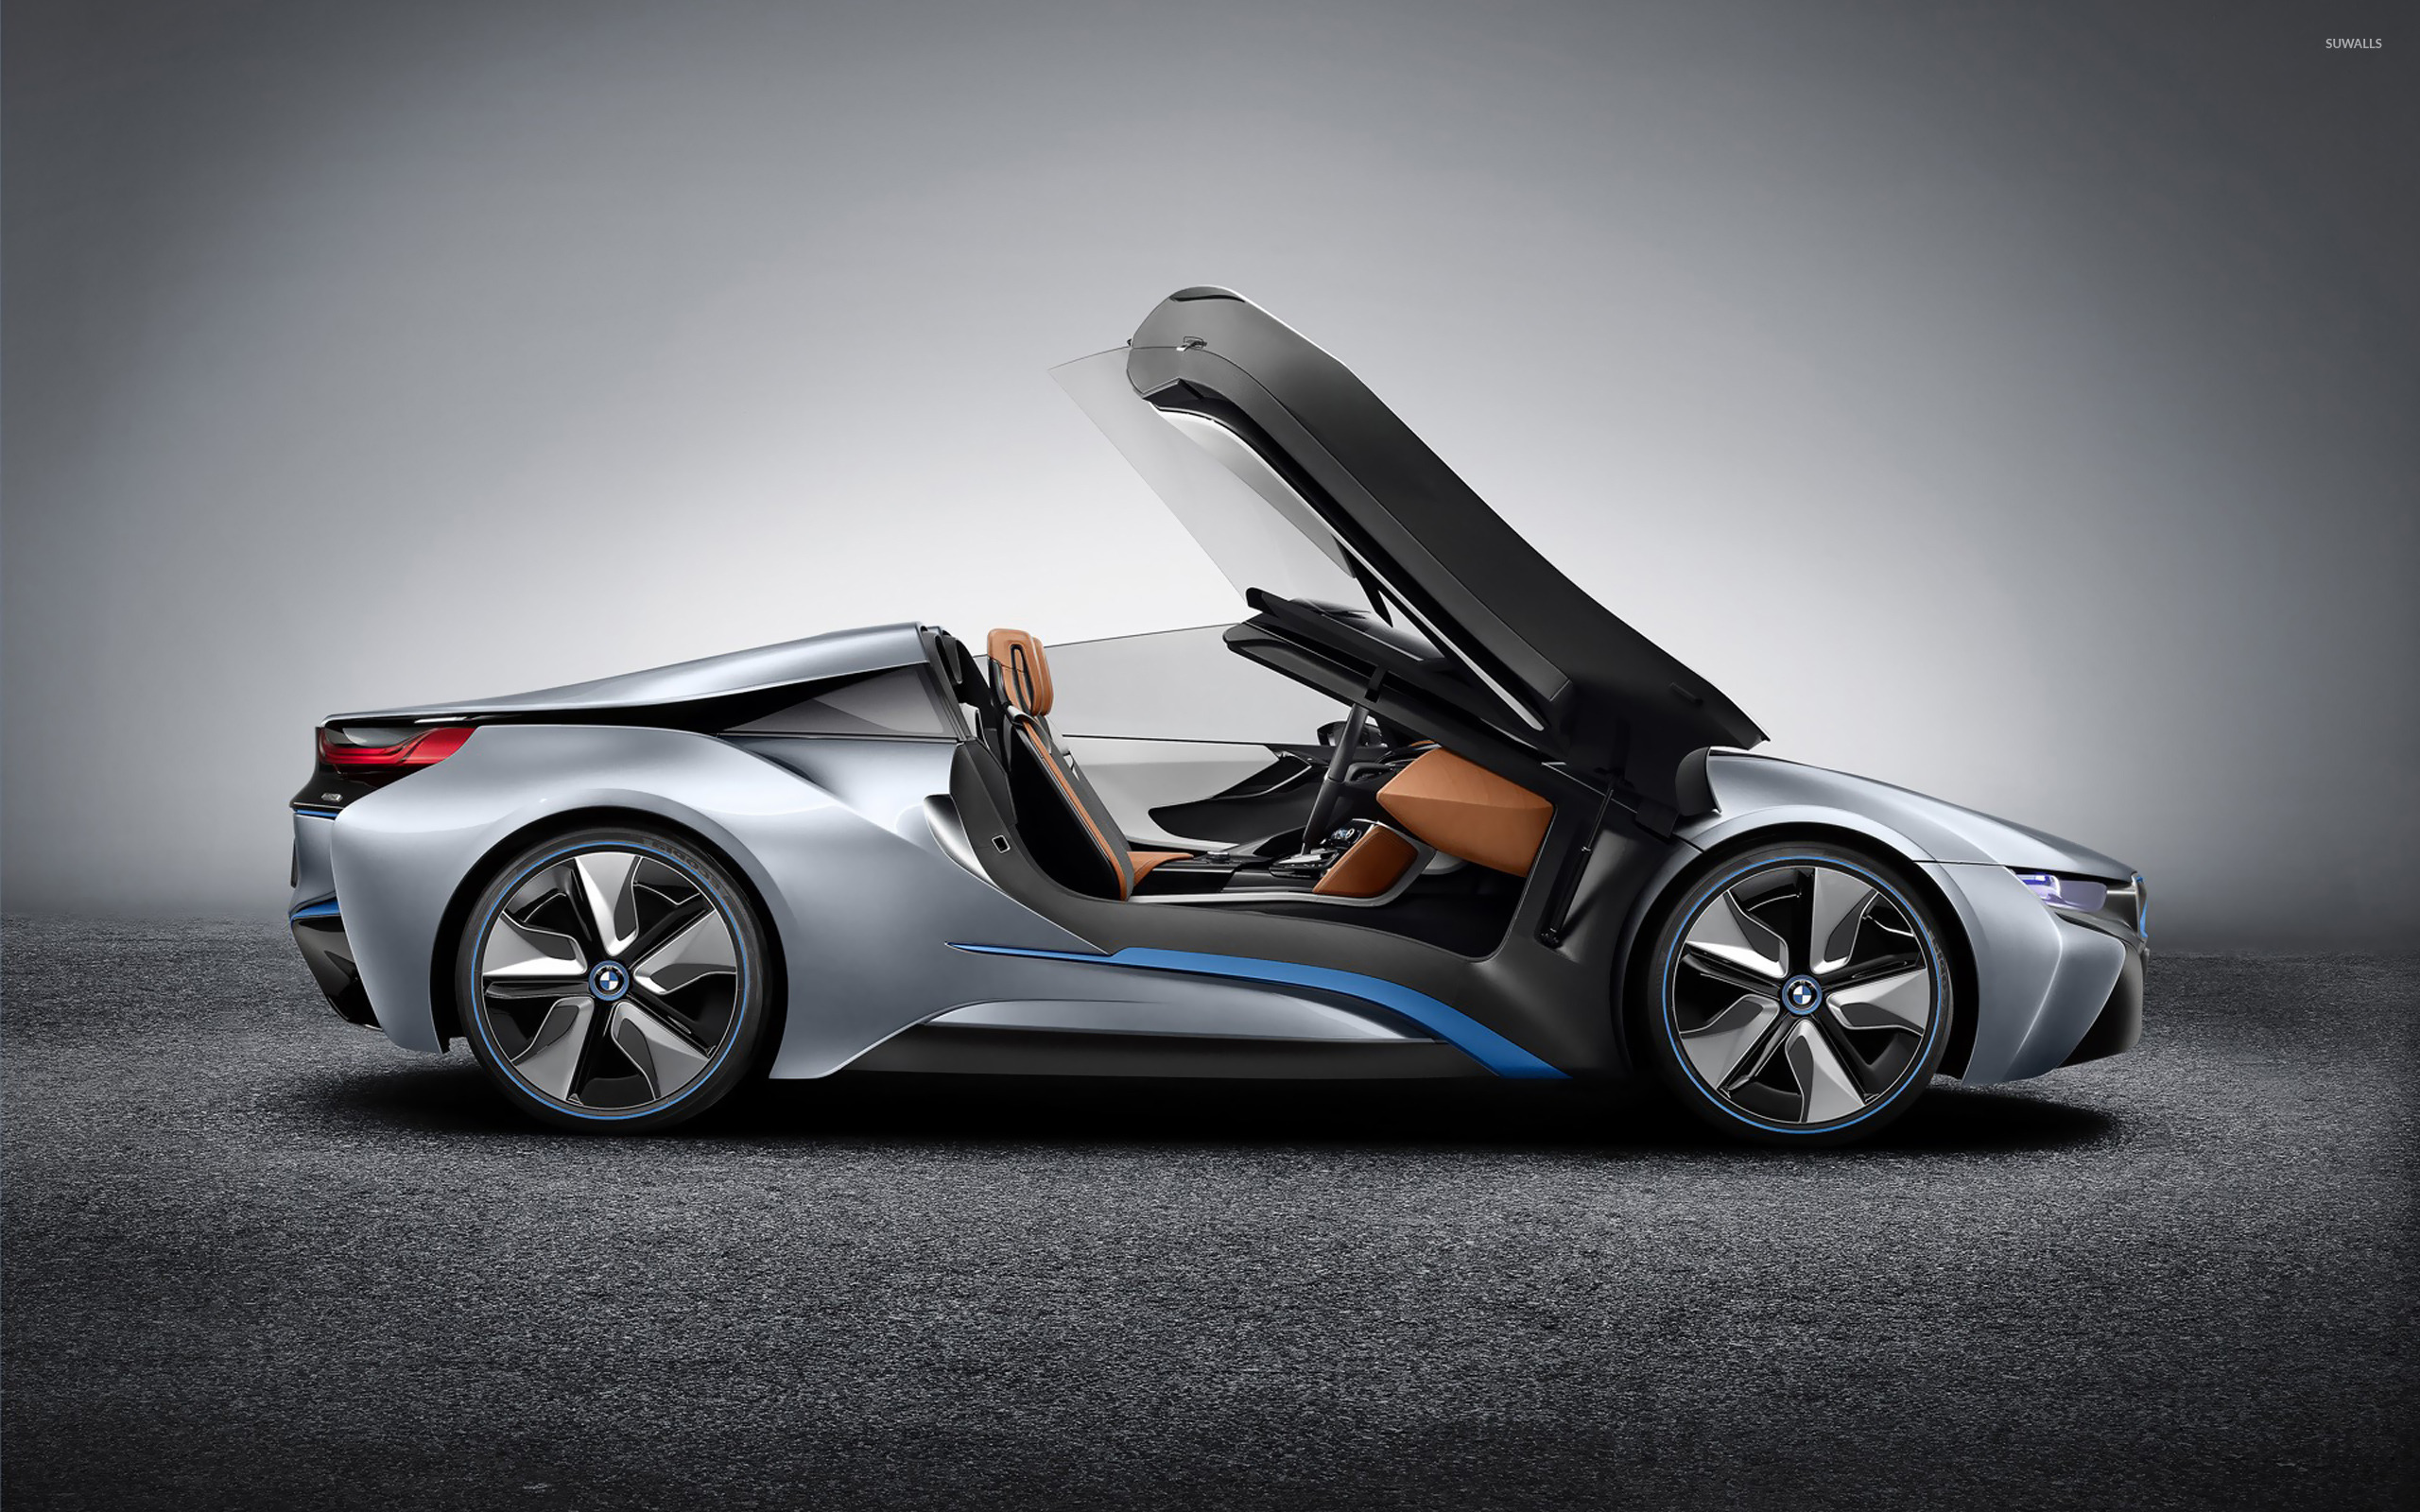 BMW I8 Concept Spyder wallpaper - Car wallpapers - #12490